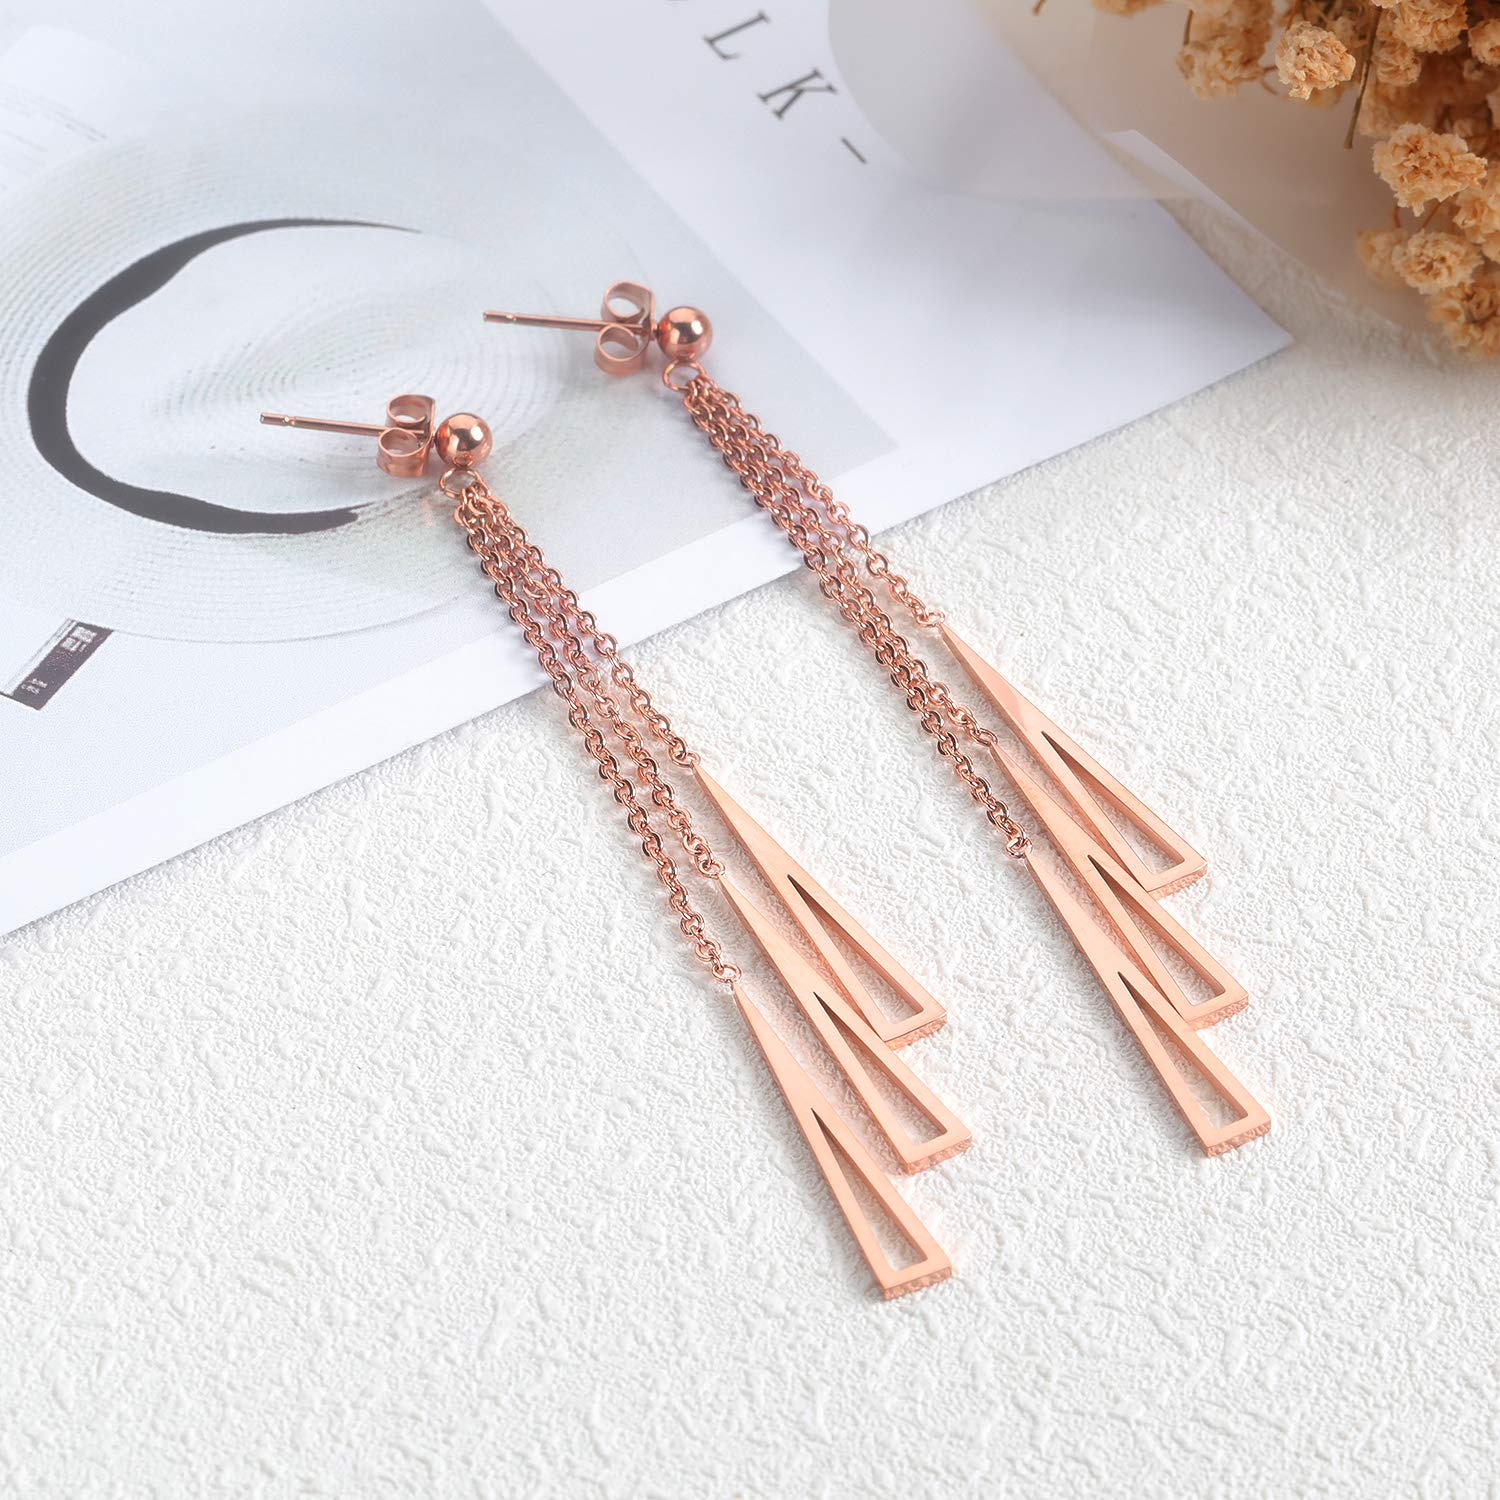 Mishow Elegant Geometric Dangle Earrings for Women Girls Rose Gold Plated Stainless Steel Fashion Jewelry